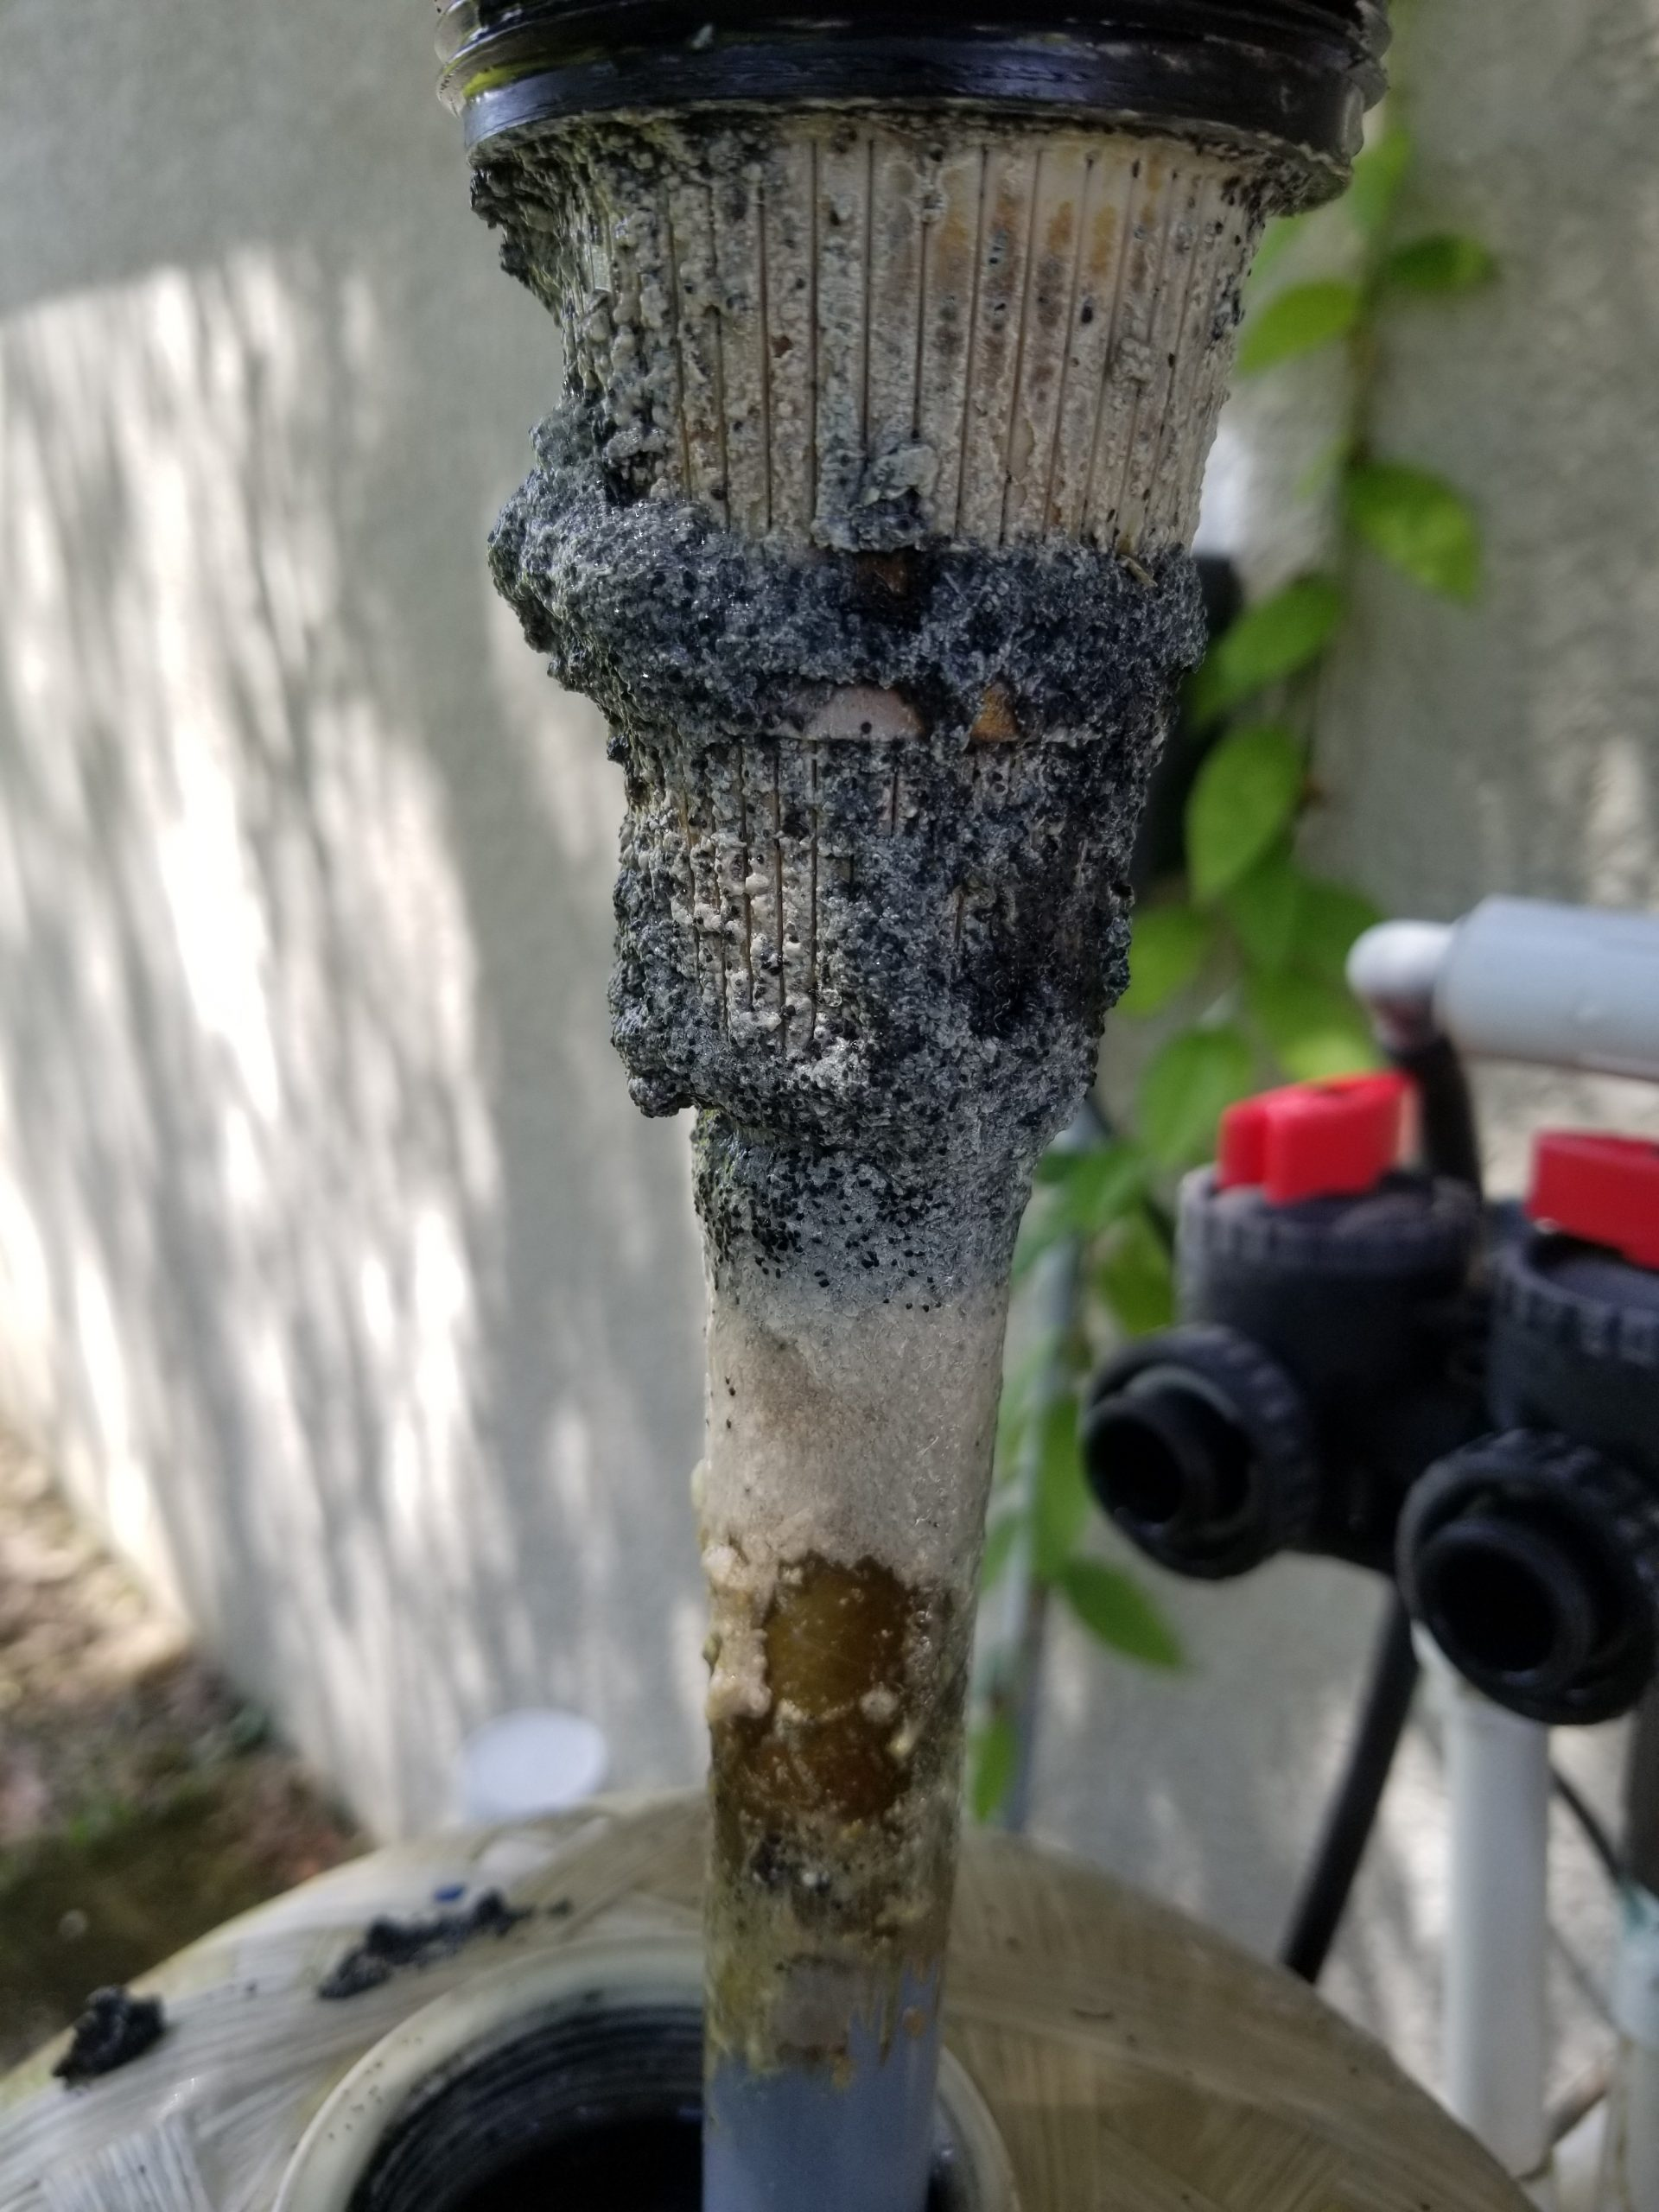 Bacterial buildup on a water system filter